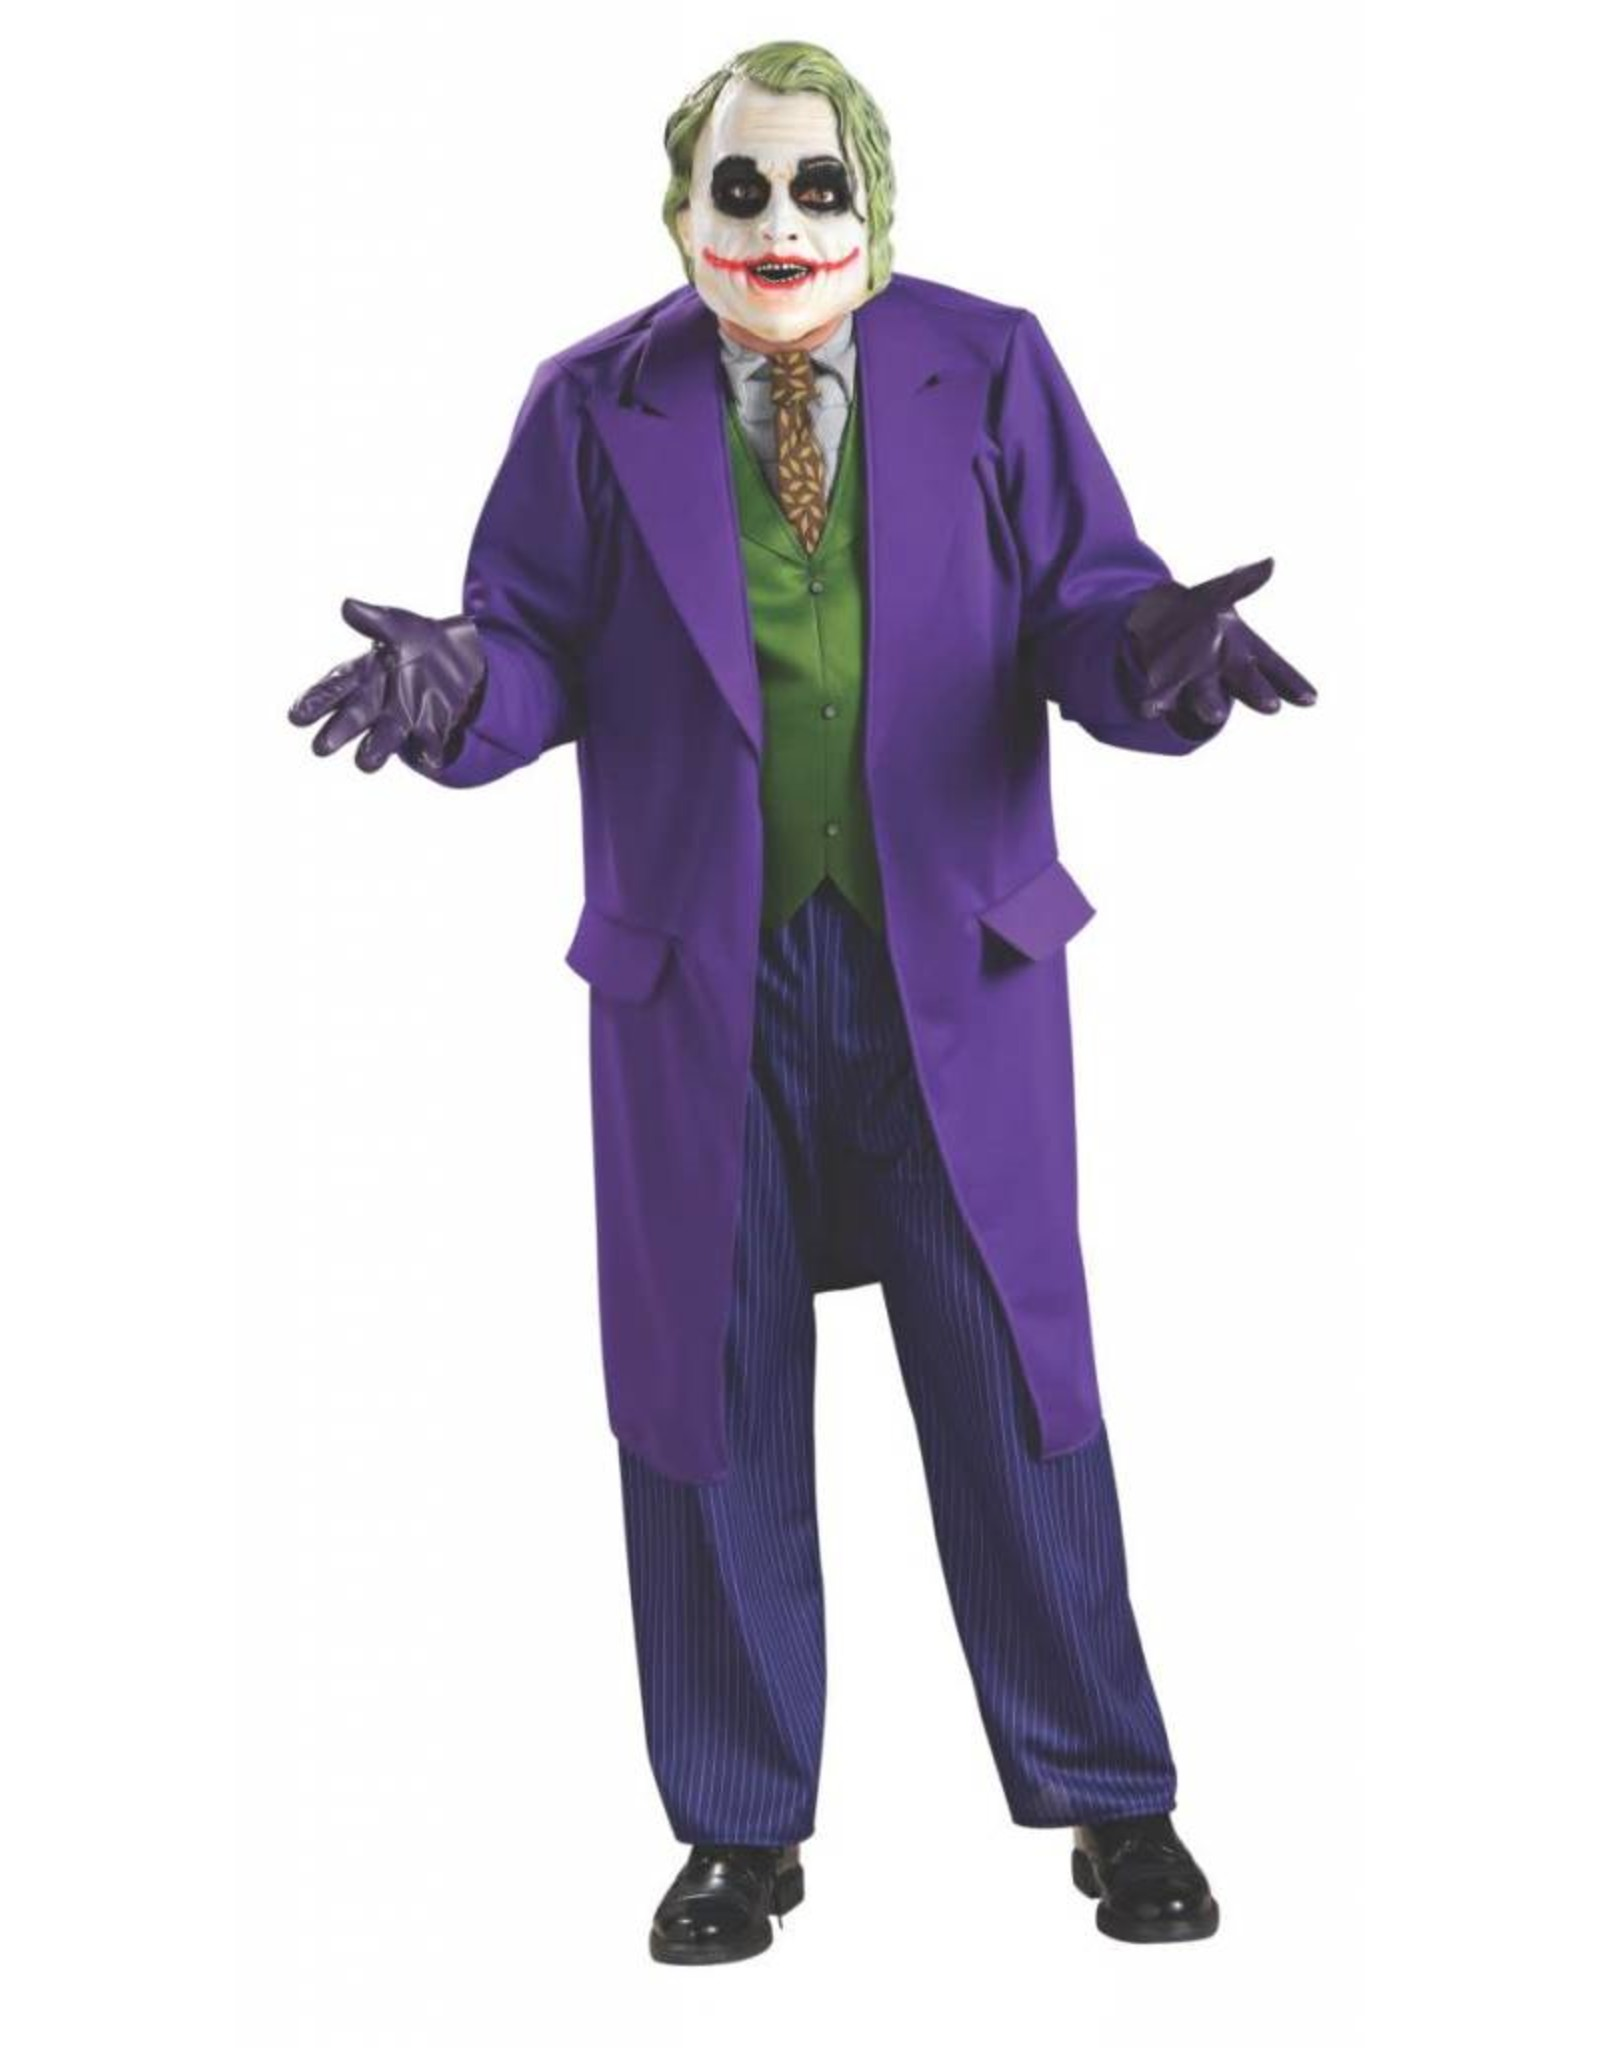 Rubies Costume The Joker - Dark Knight